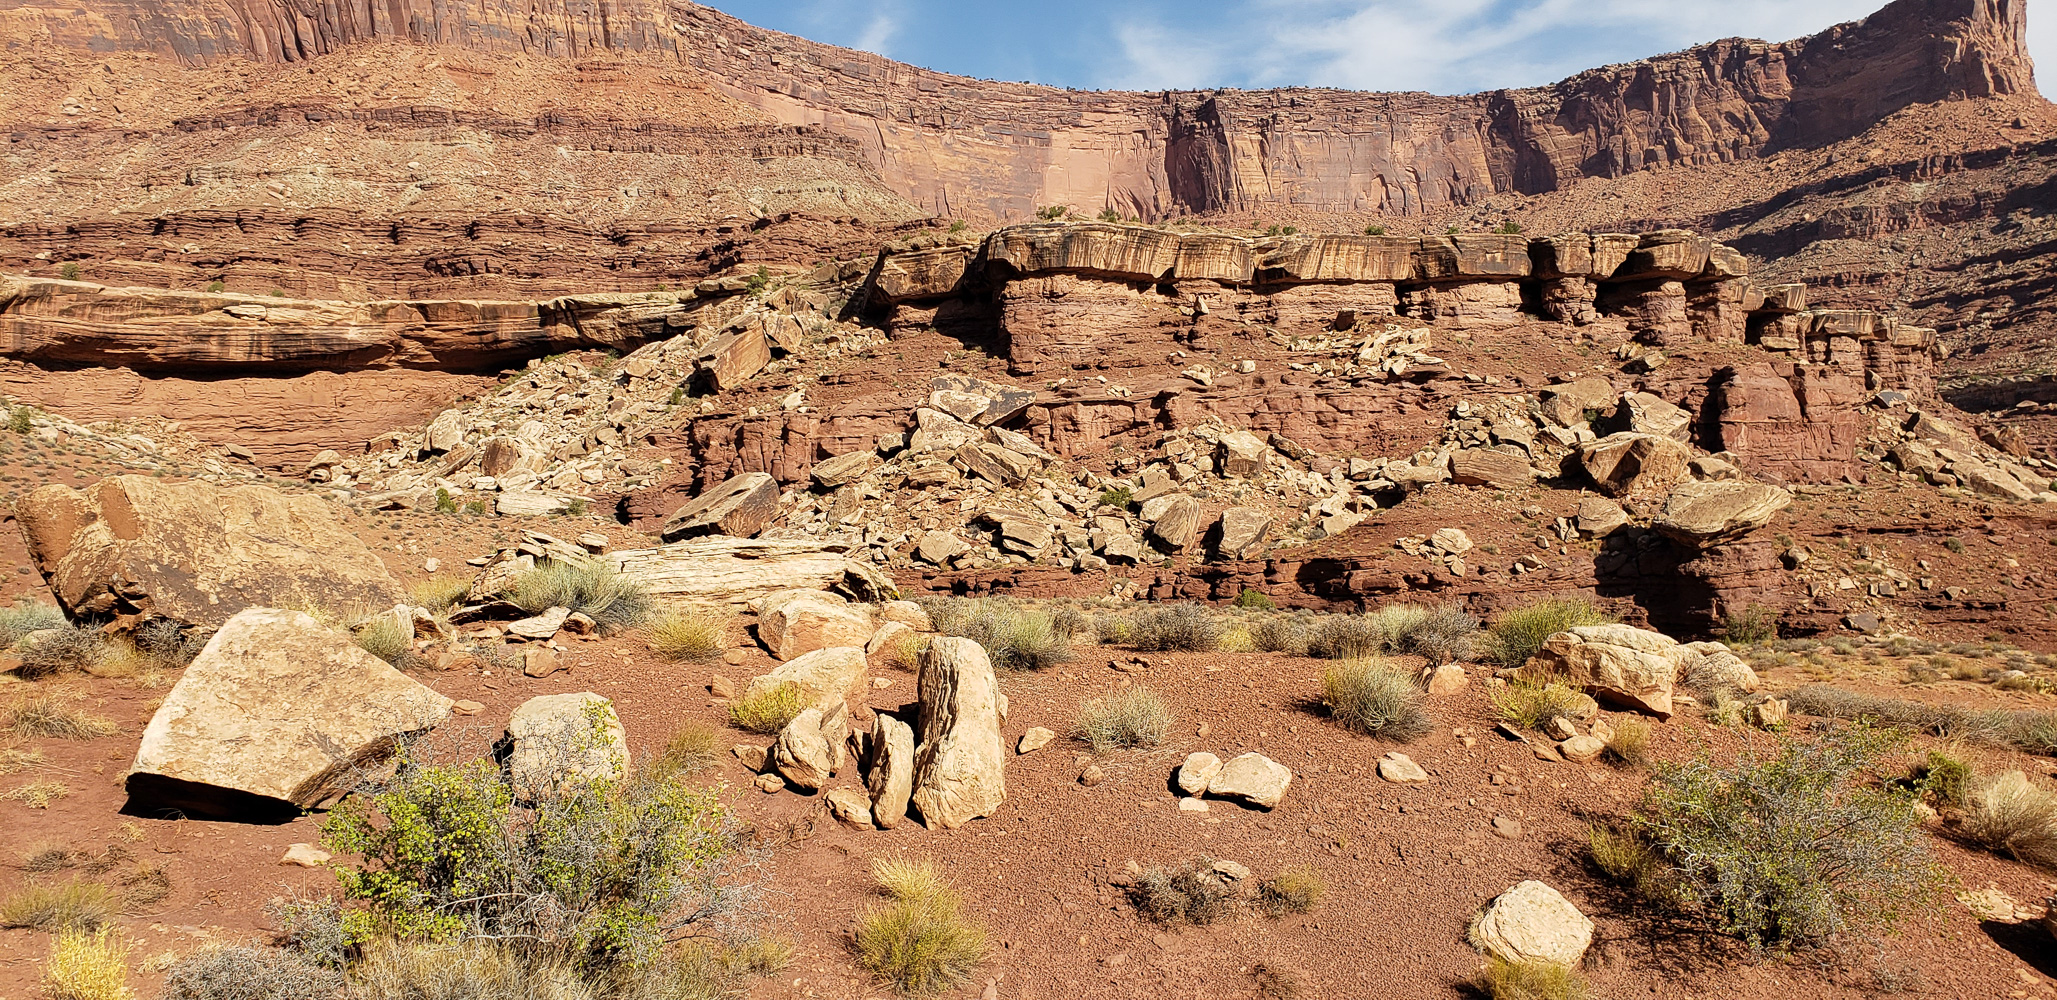 Shafer Canyon in the Islands of the Sky area of Canyonlands National Park